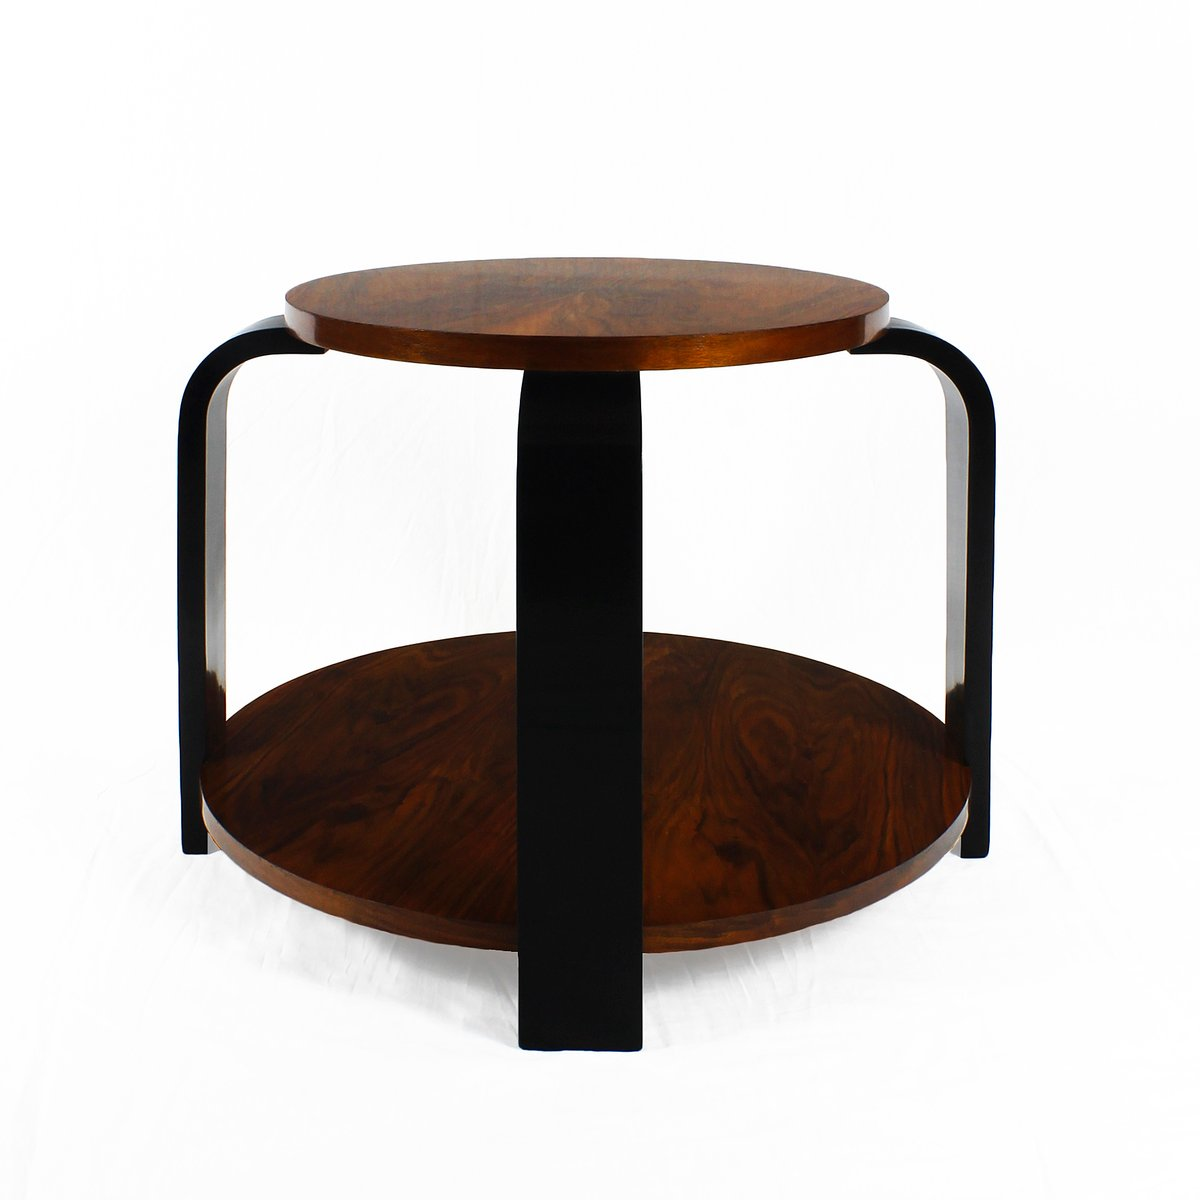 Art Deco Side Table, 1930s 5. $3,592.00. Price Per Piece